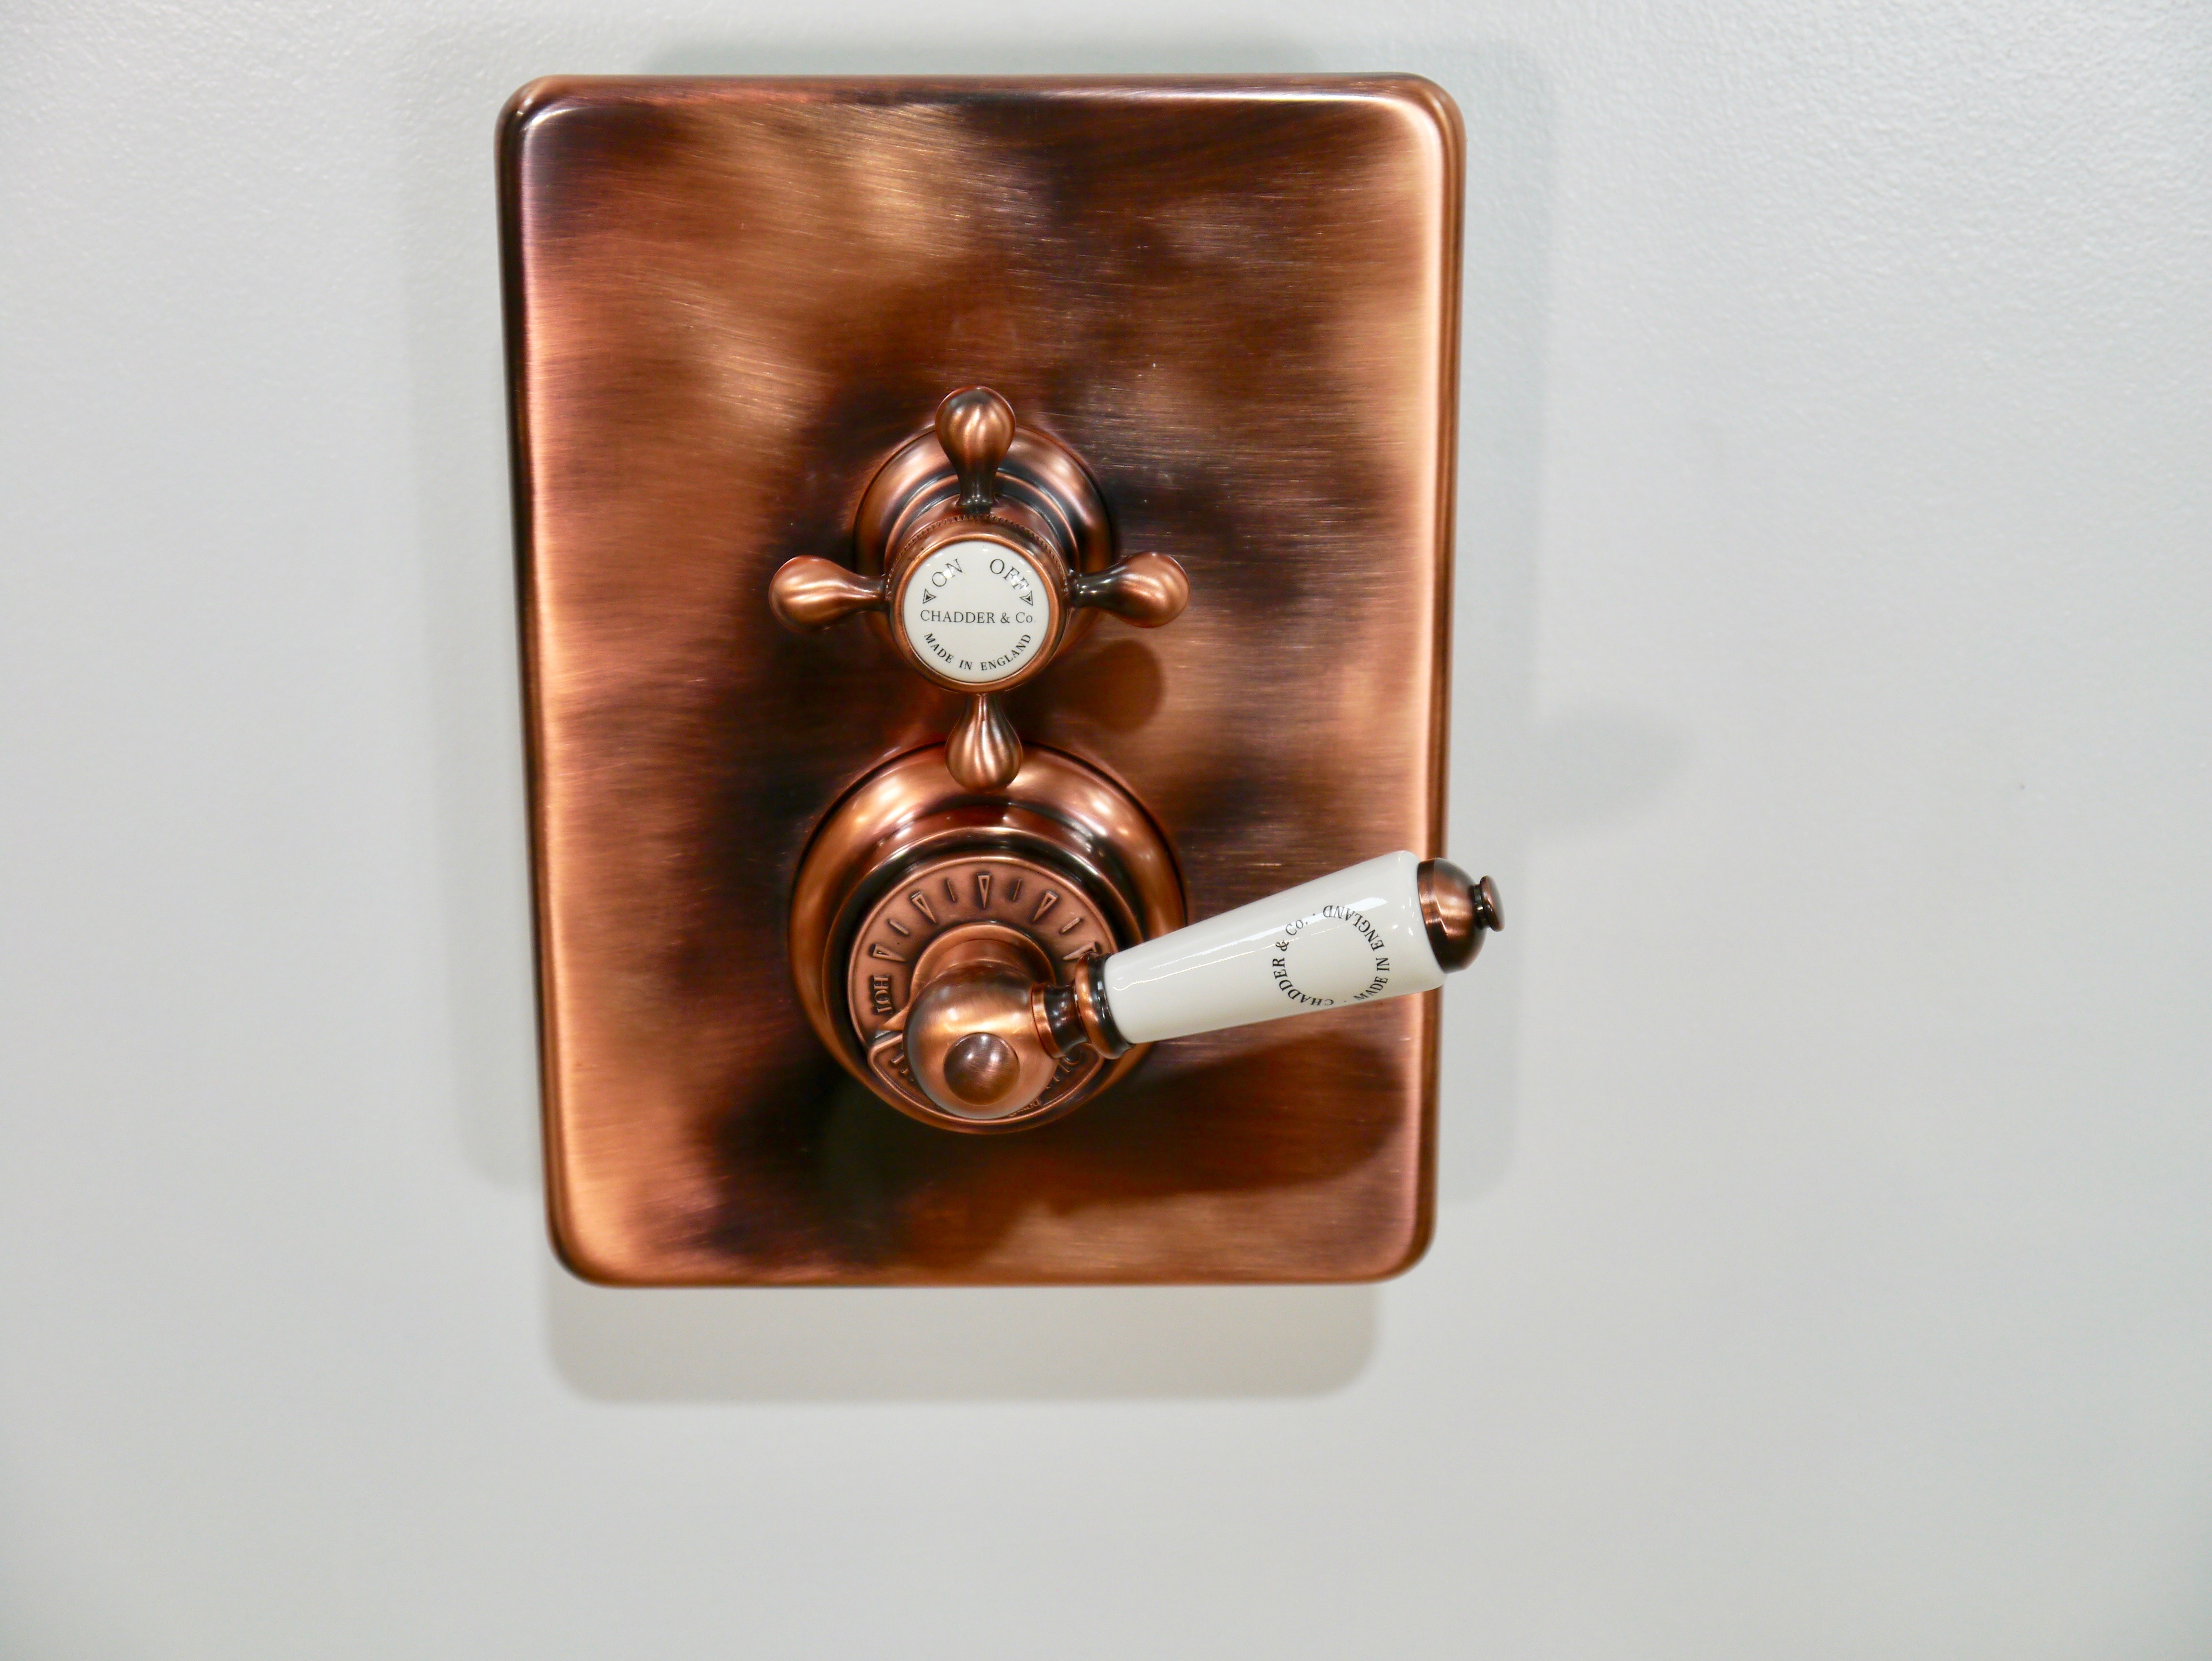 concealed shower thermostatic valve in aged copper brass